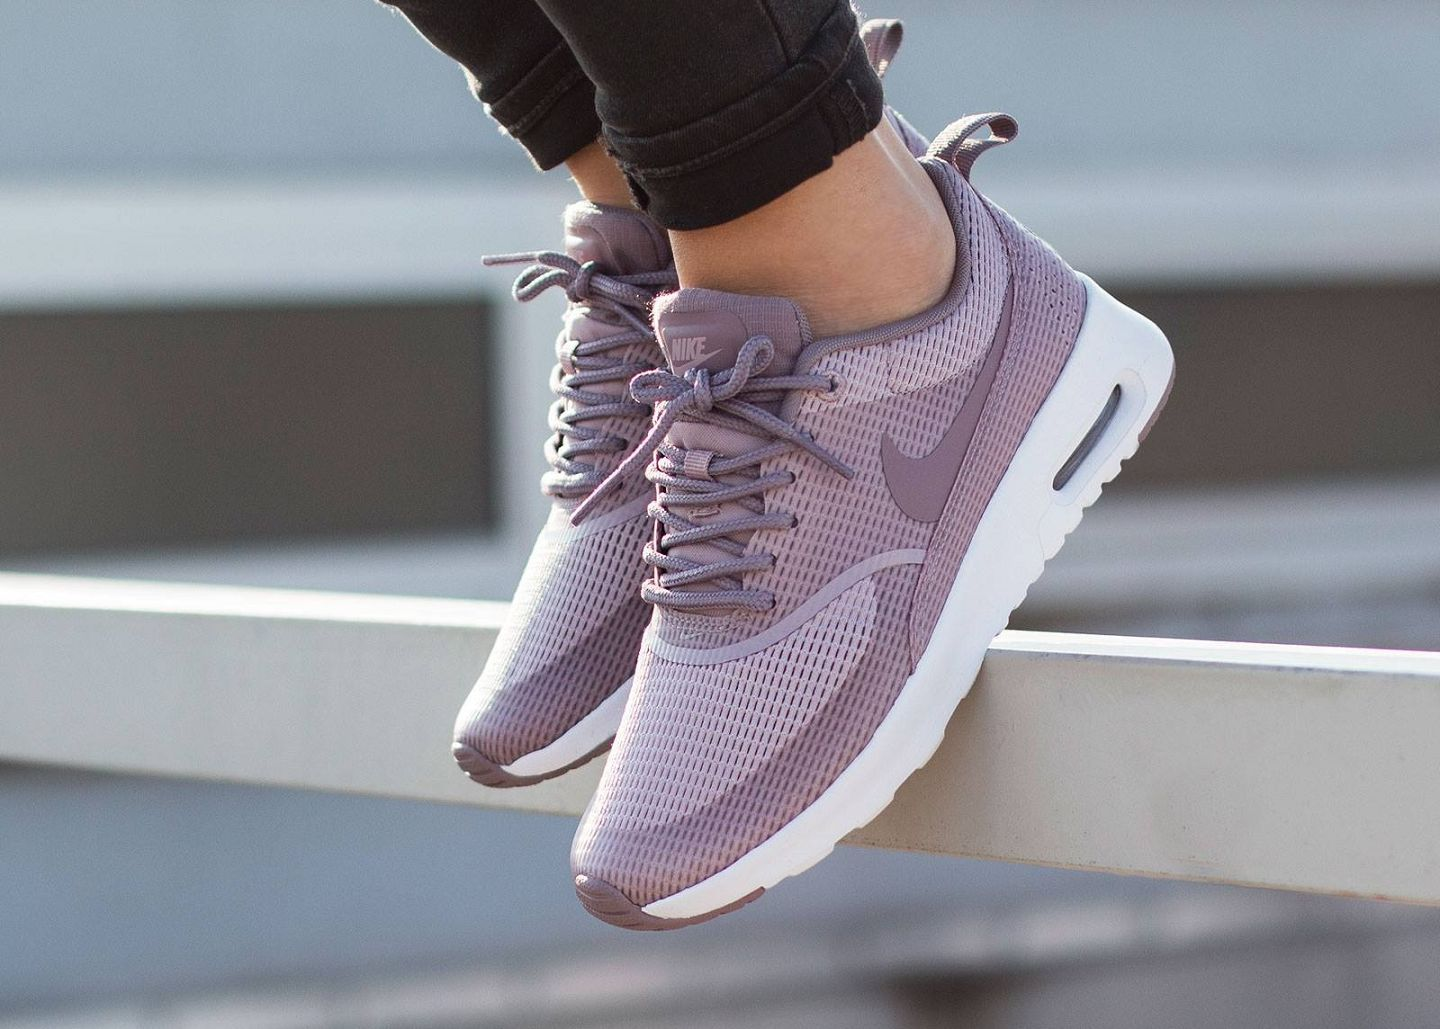 the latest 91dc0 00d1a it is so beautiful and exquisite Running shoes sale happening now!Buy sport  shoes at up to 70% OFF retail prices,only  21 to get it too